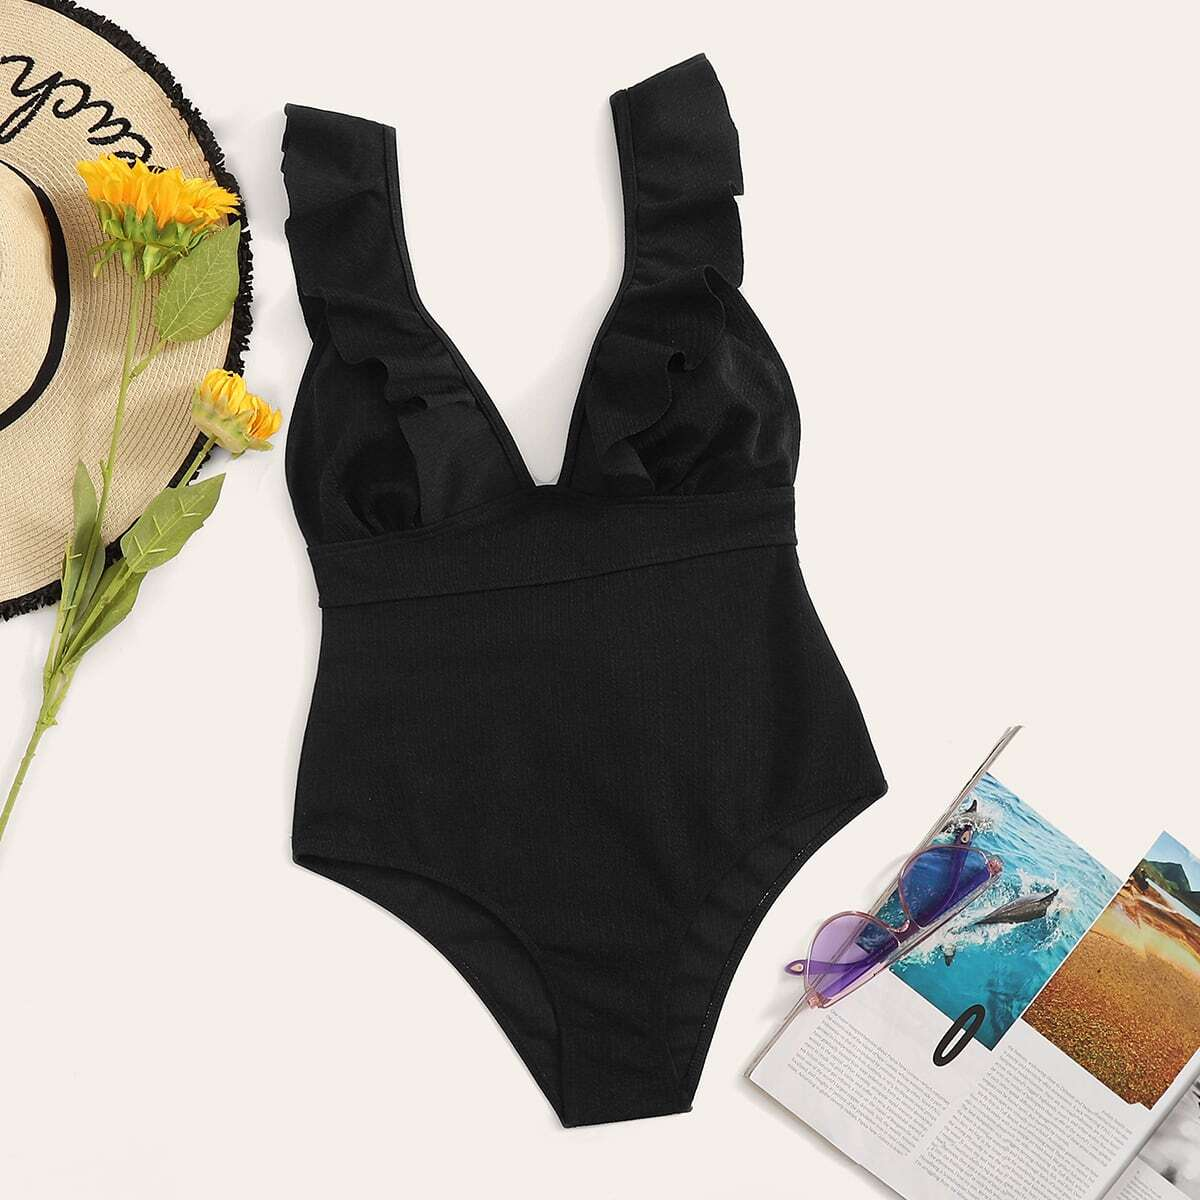 SHEIN coupon: Ruffle Trim Lace Up Back One Piece Swimsuit